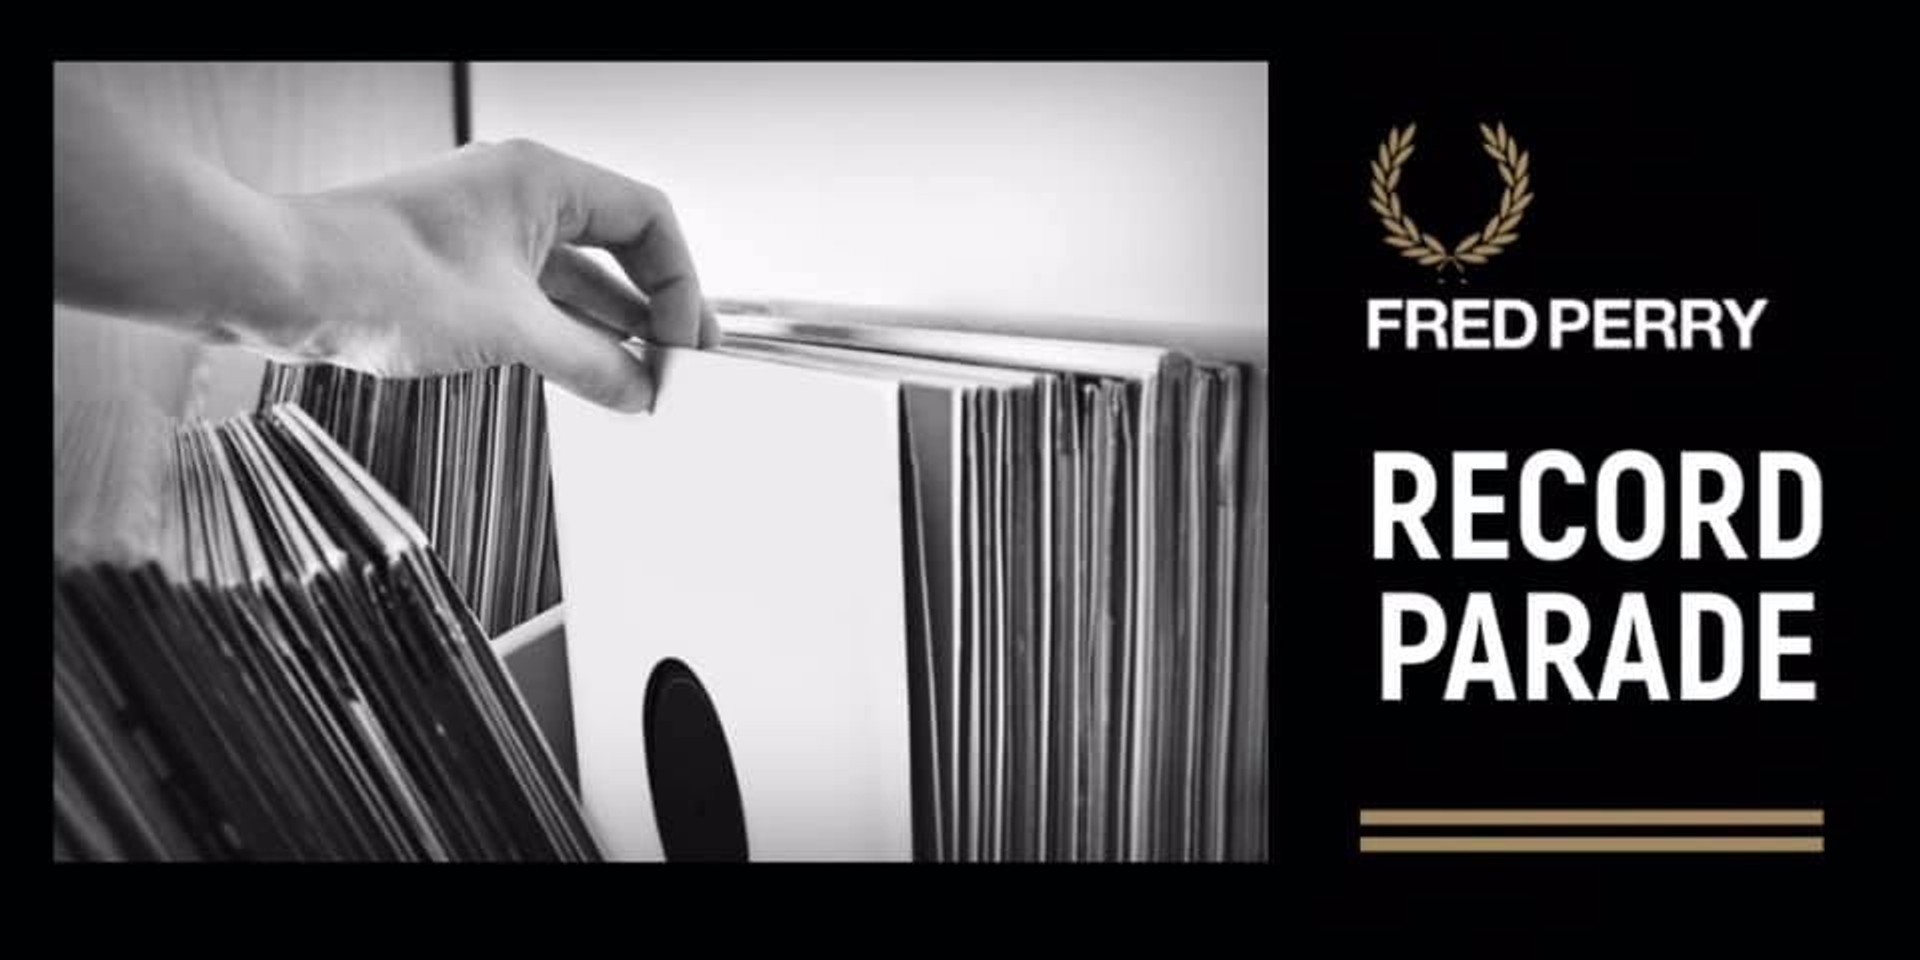 Record Parade is coming to Manila